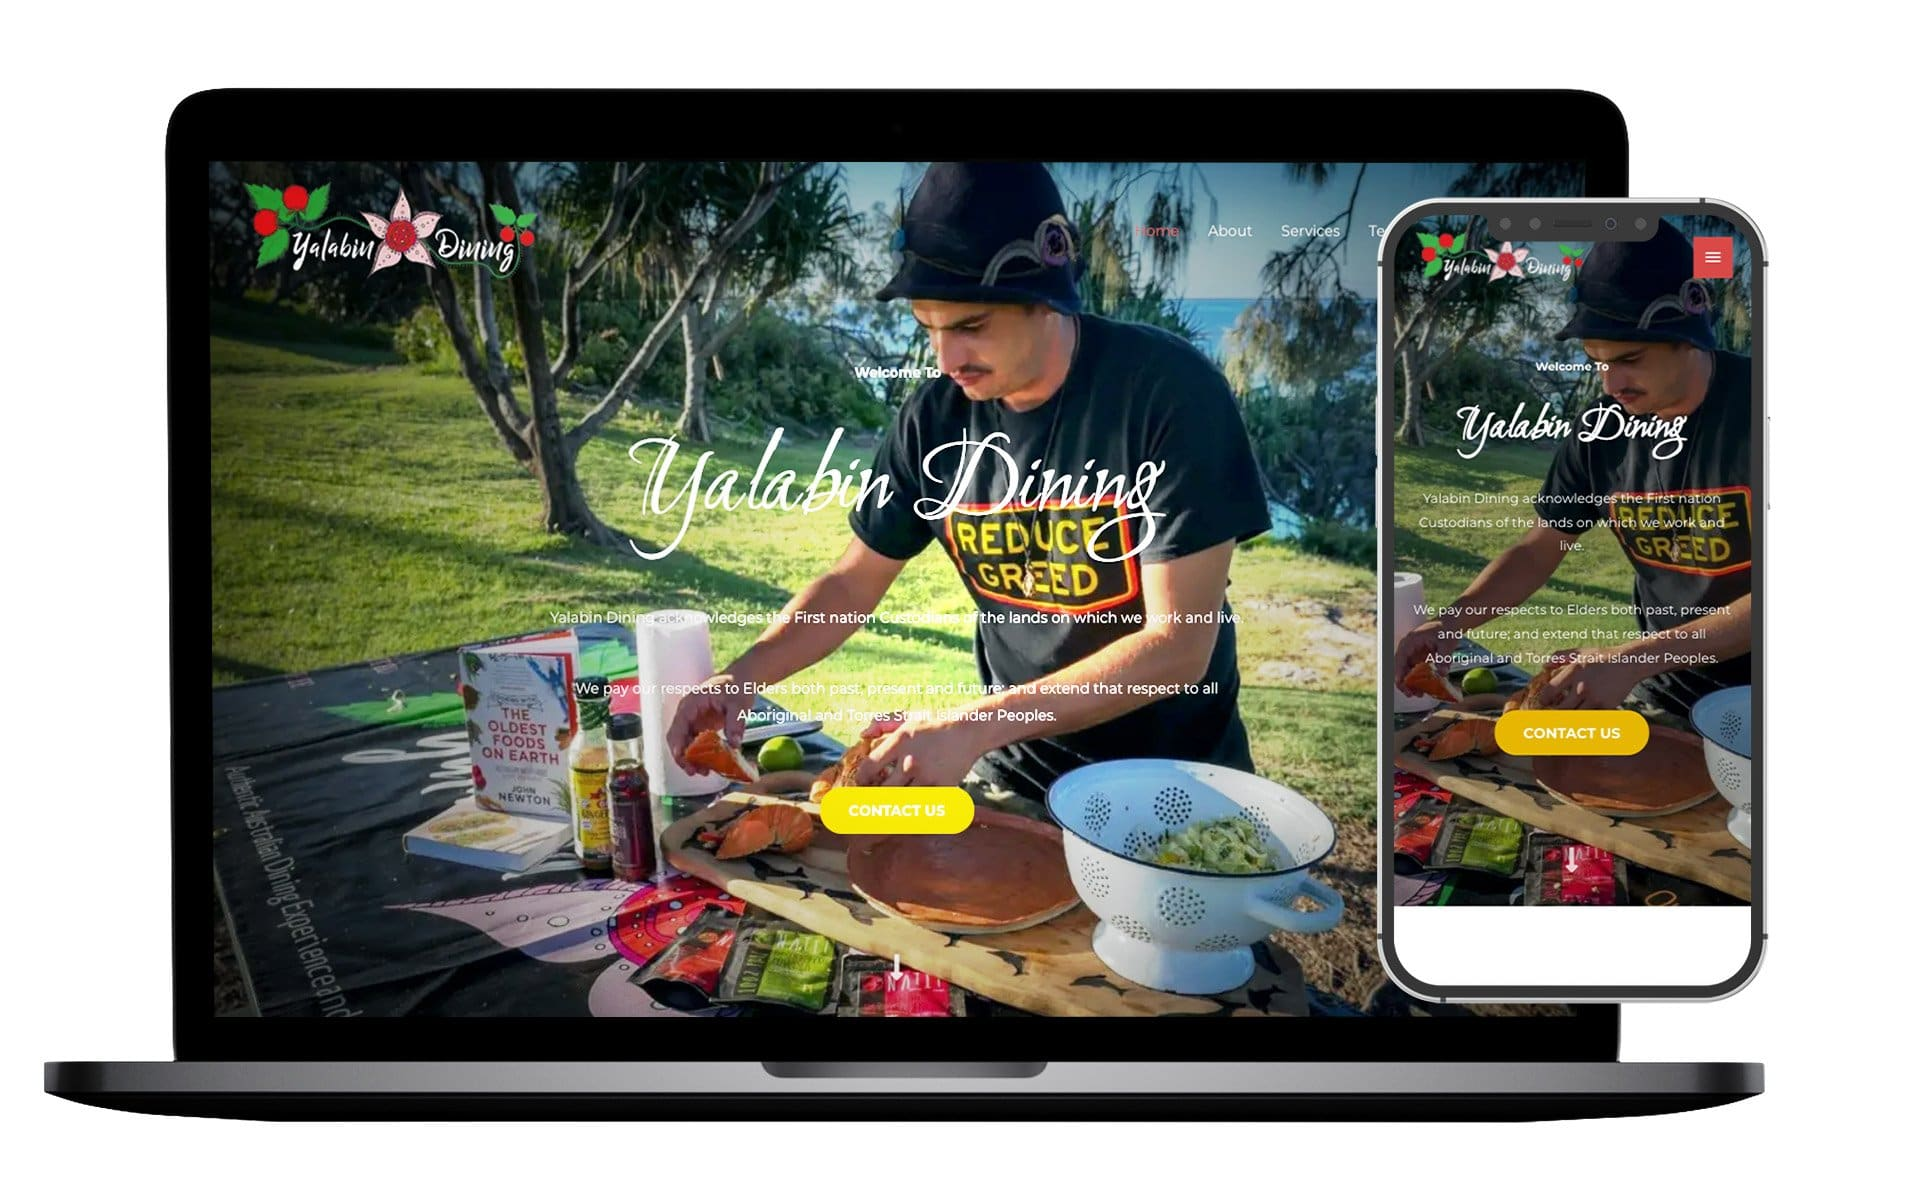 Yalabin Dining Website Design